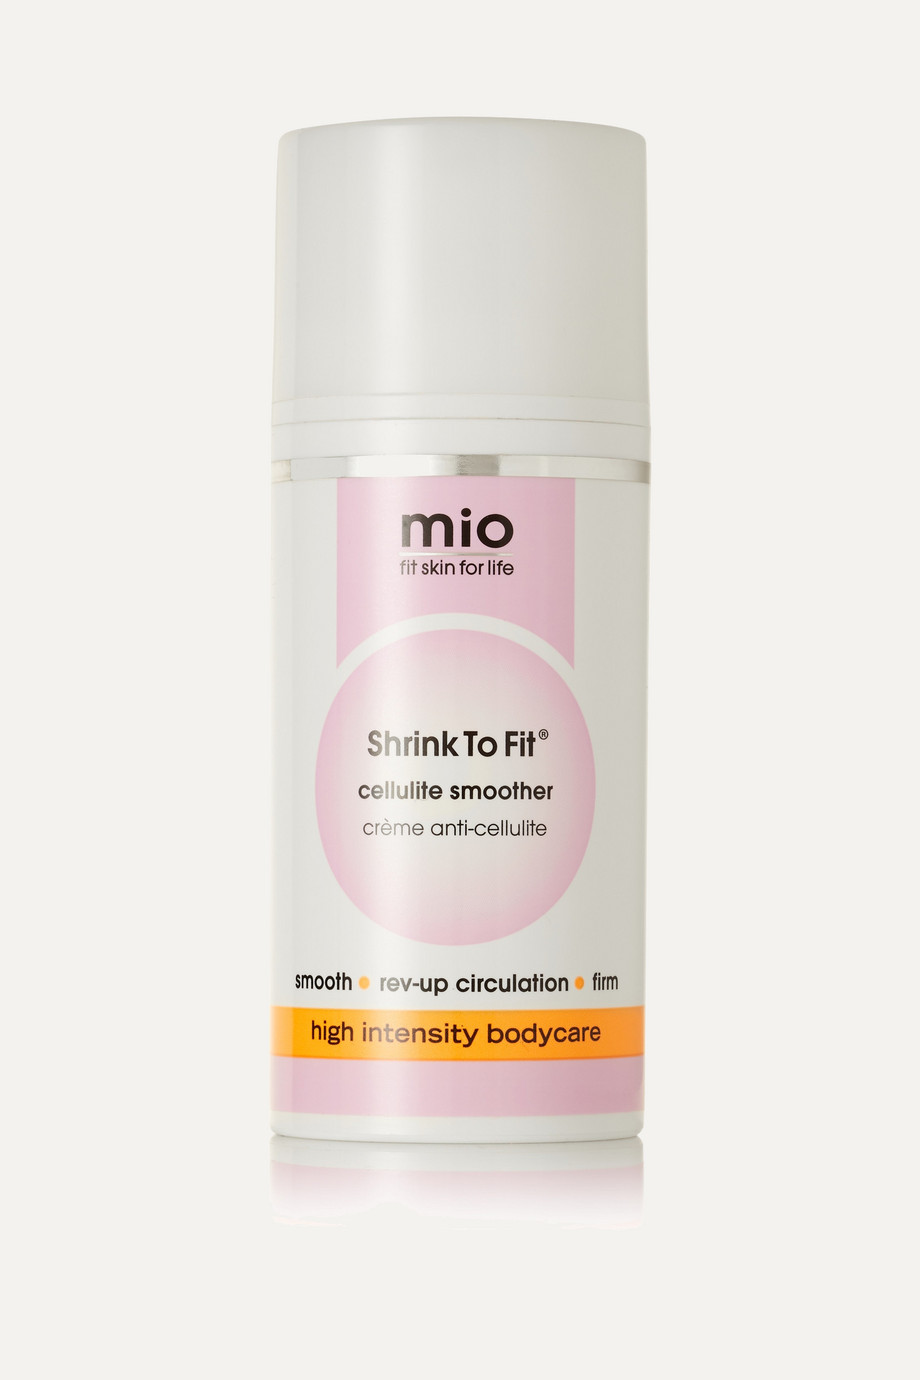 Shrink to Fit Cellulite Smoother, 100ml, by Mio Skincare